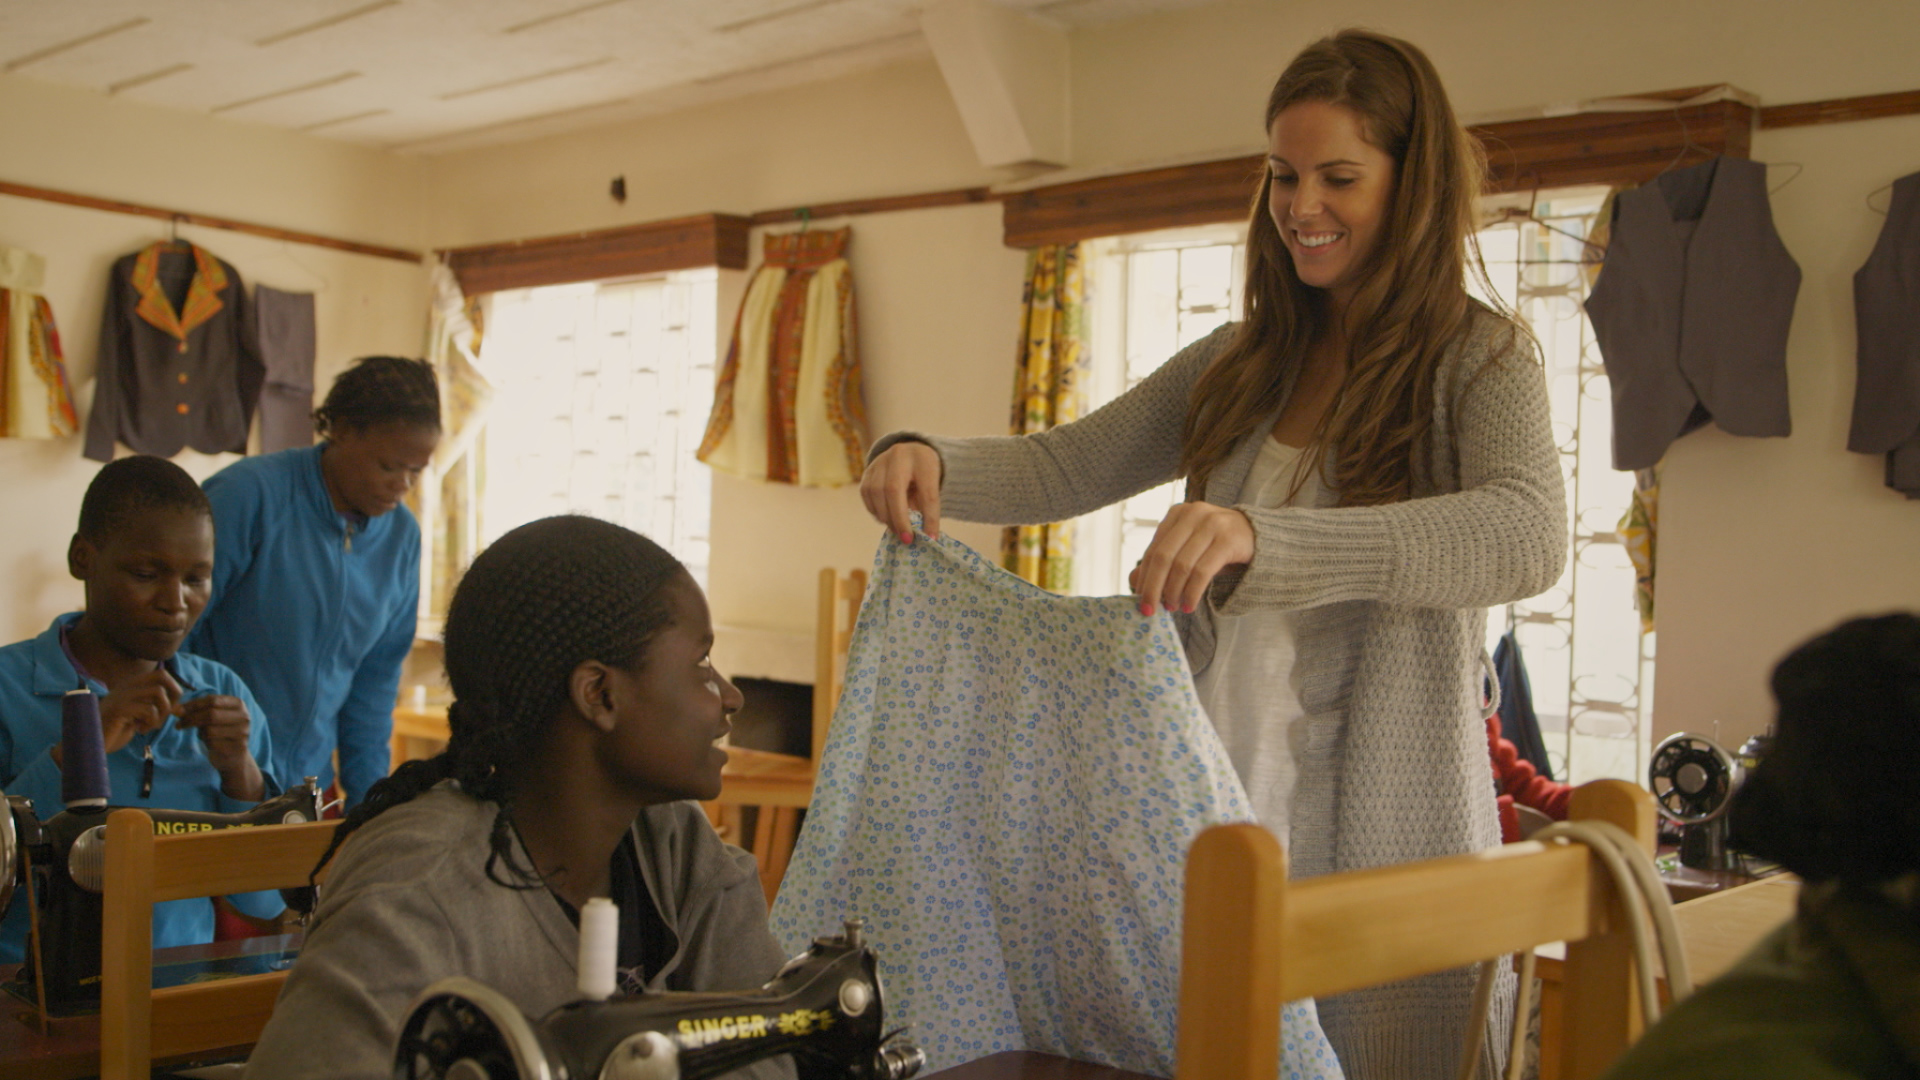 """American fashion designer Anna Taylor works with women in Nairobi, Kenya to teach them valuable seamstress skills to support themselves while creating her clothing line, Judith&James. Anna is one of four artists profiled in the film """"Little Stones"""". PHOTO: Courtesy """"Little Stones"""""""